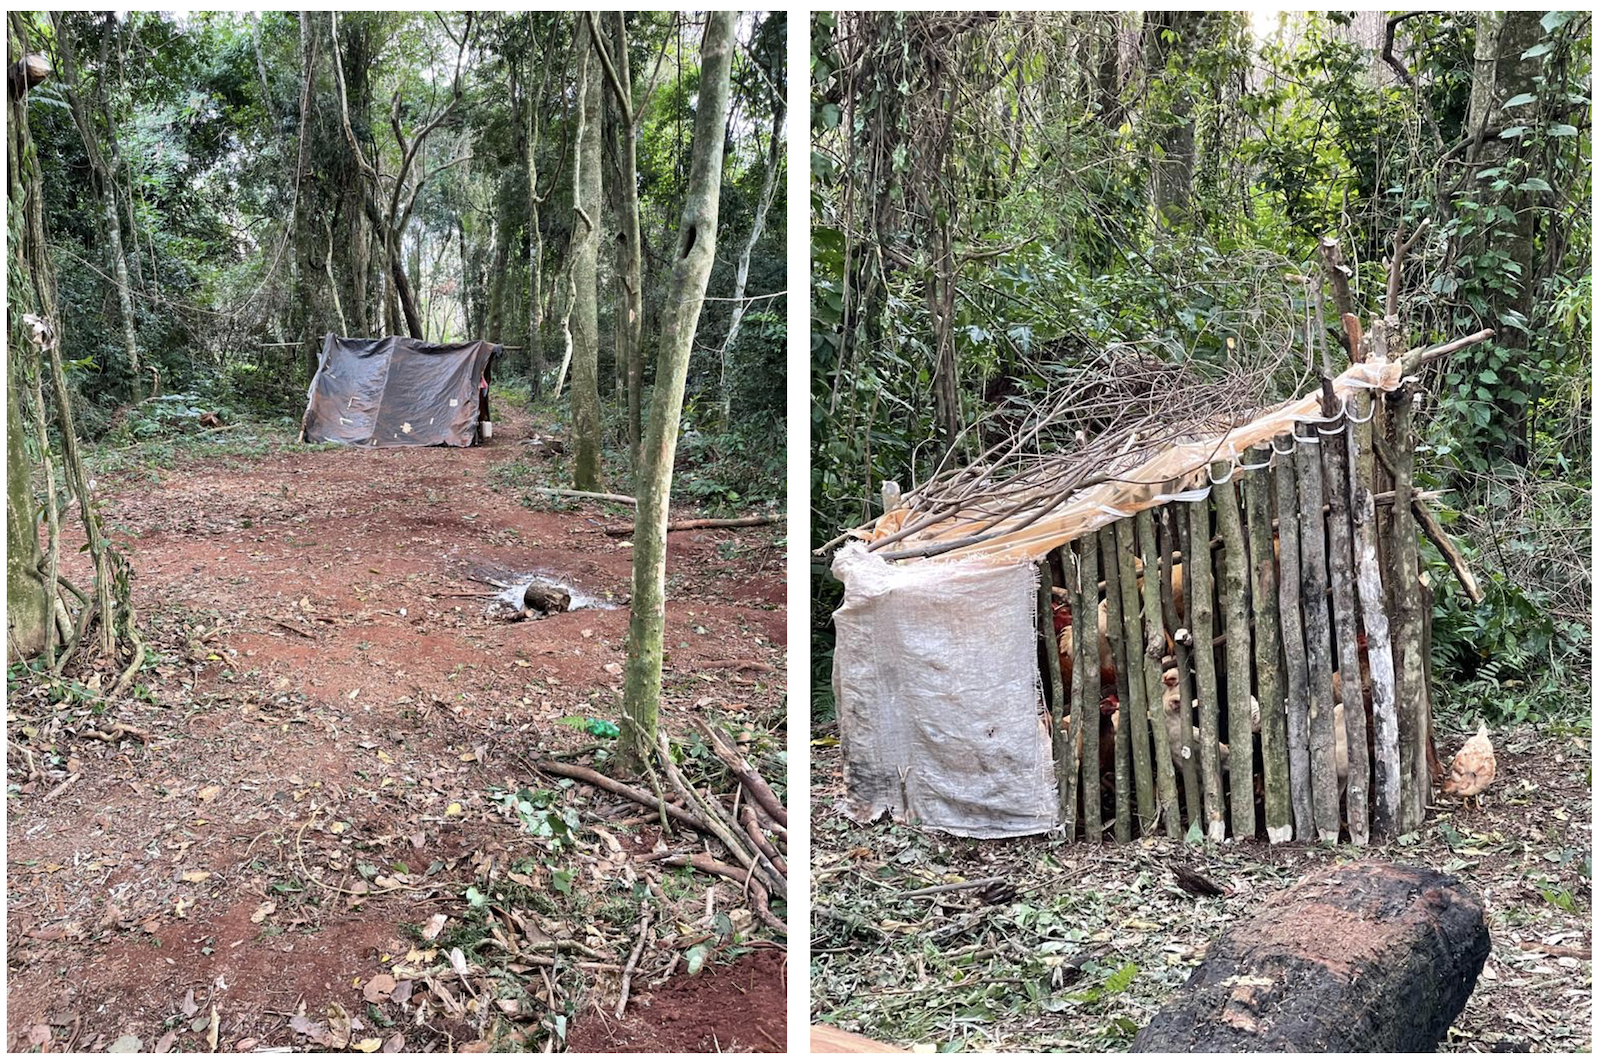 This encampment and a makeshift coop filled with chickens appeared in San Rafael in late May. Image used with permission from anonymous source.